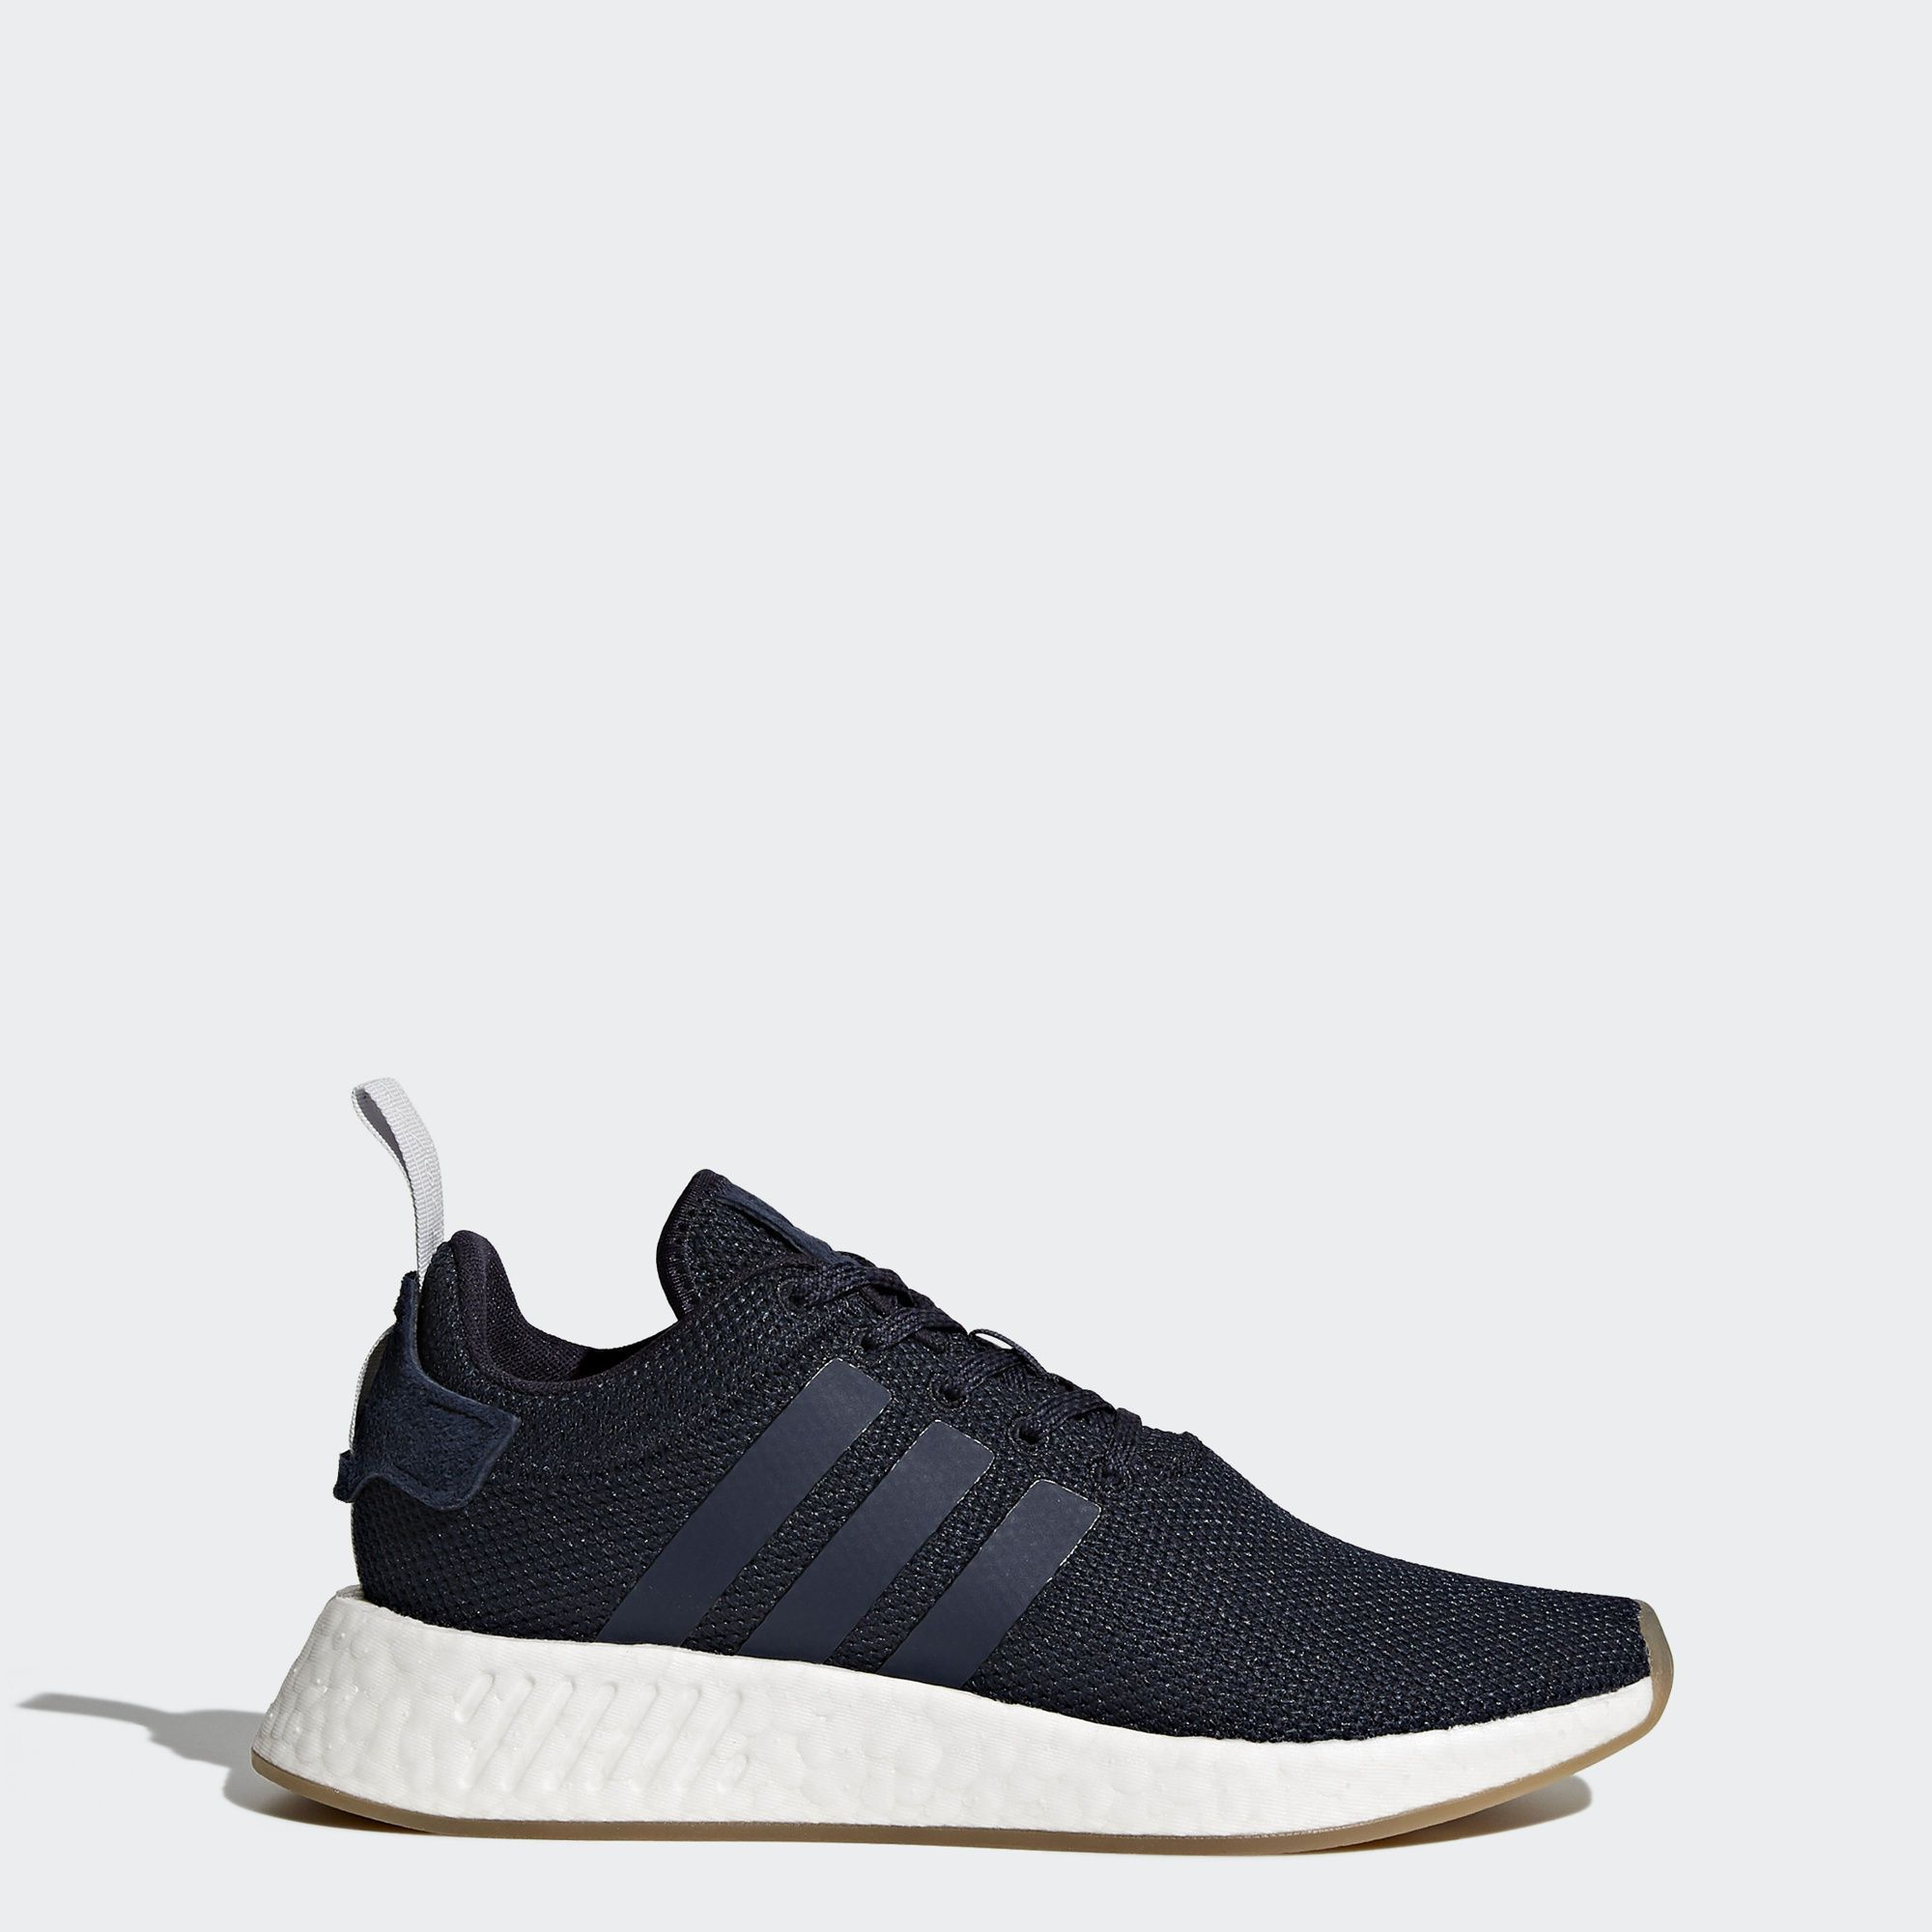 Inspired by the best of adidas heritage, these womens NMD shoes bring  modern style to the streets. Riding on a responsive boost™ midsole that  helps return ...